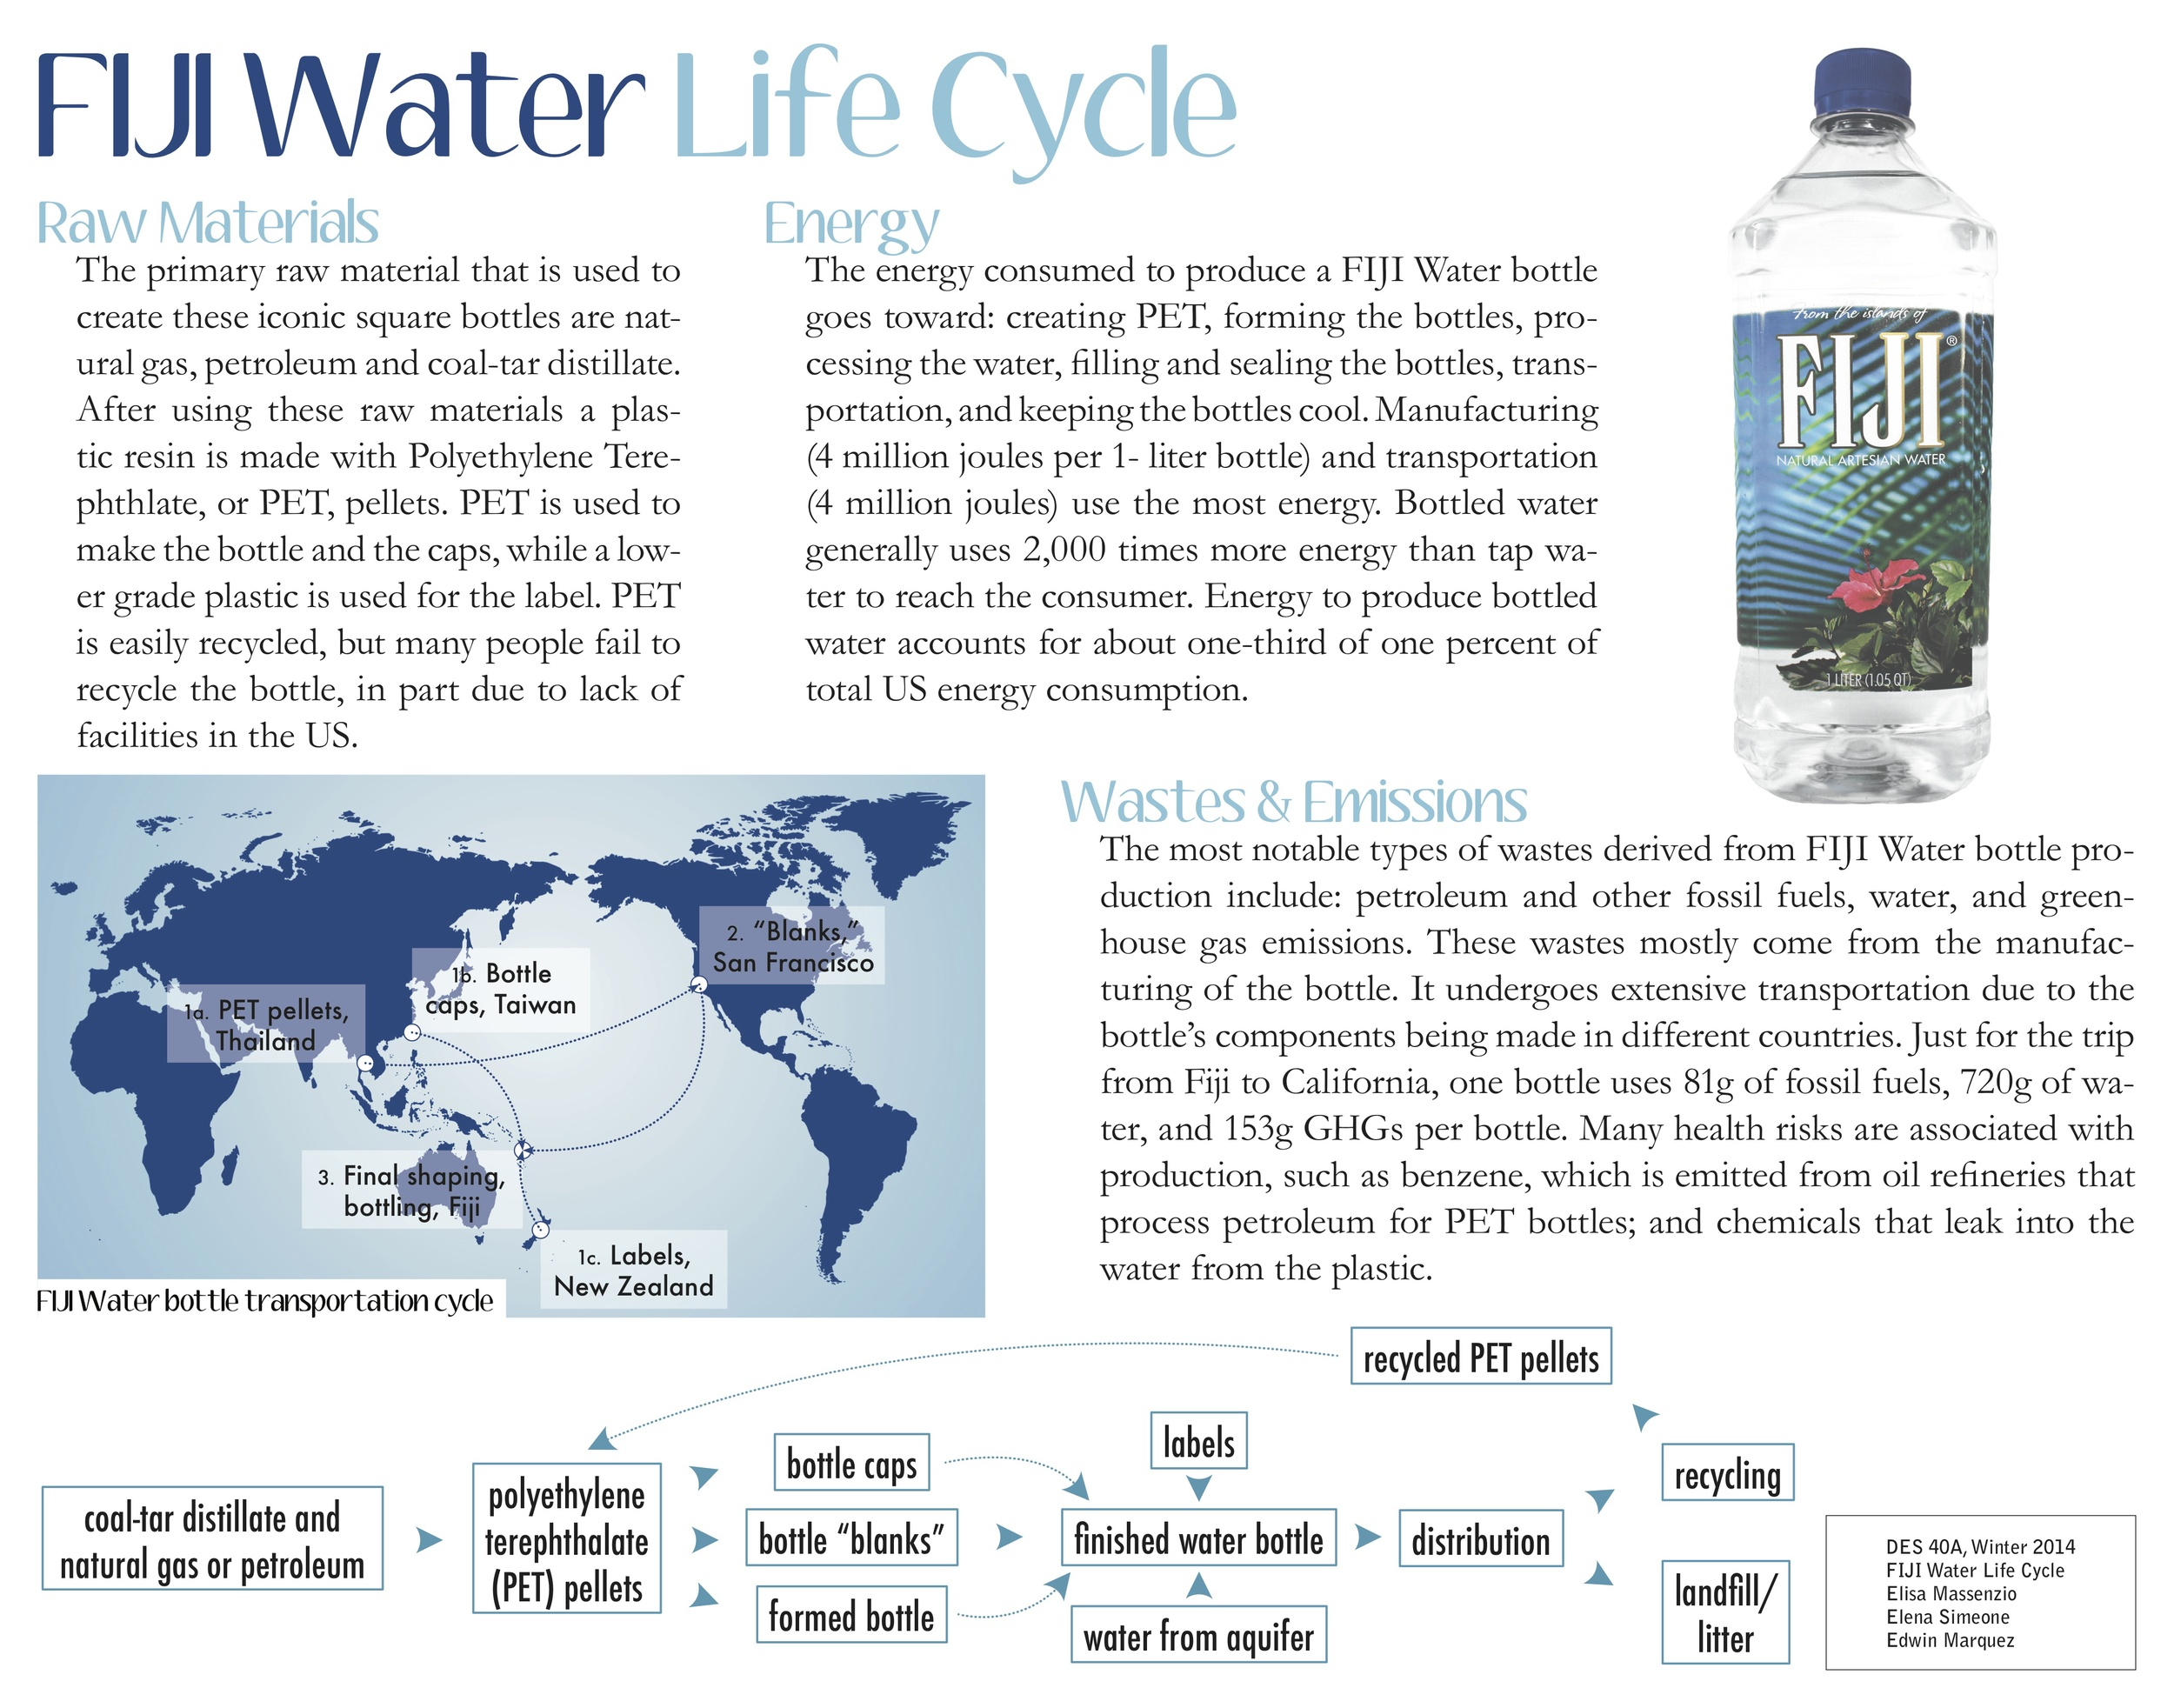 Fiji Water Life Cycle